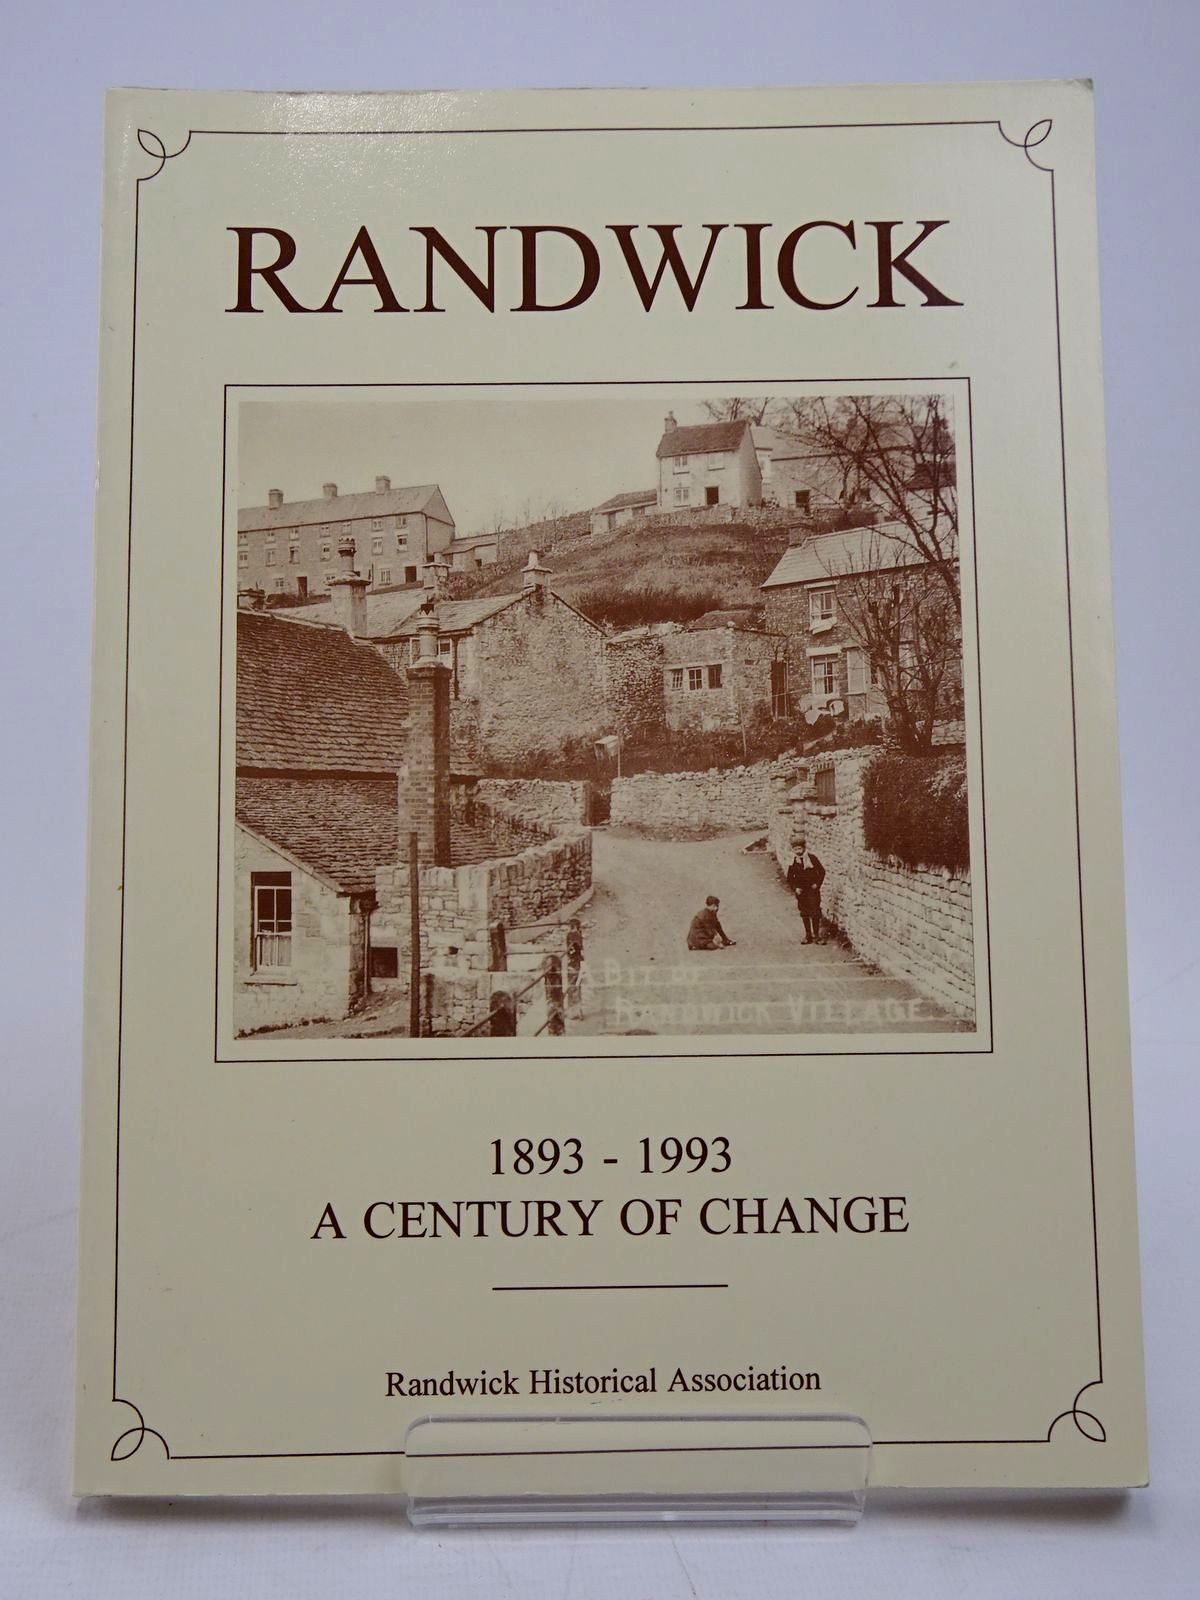 Photo of RANDWICK 1893-1993 A CENTURY OF CHANGE published by Randwick Historical Association (STOCK CODE: 1817701)  for sale by Stella & Rose's Books